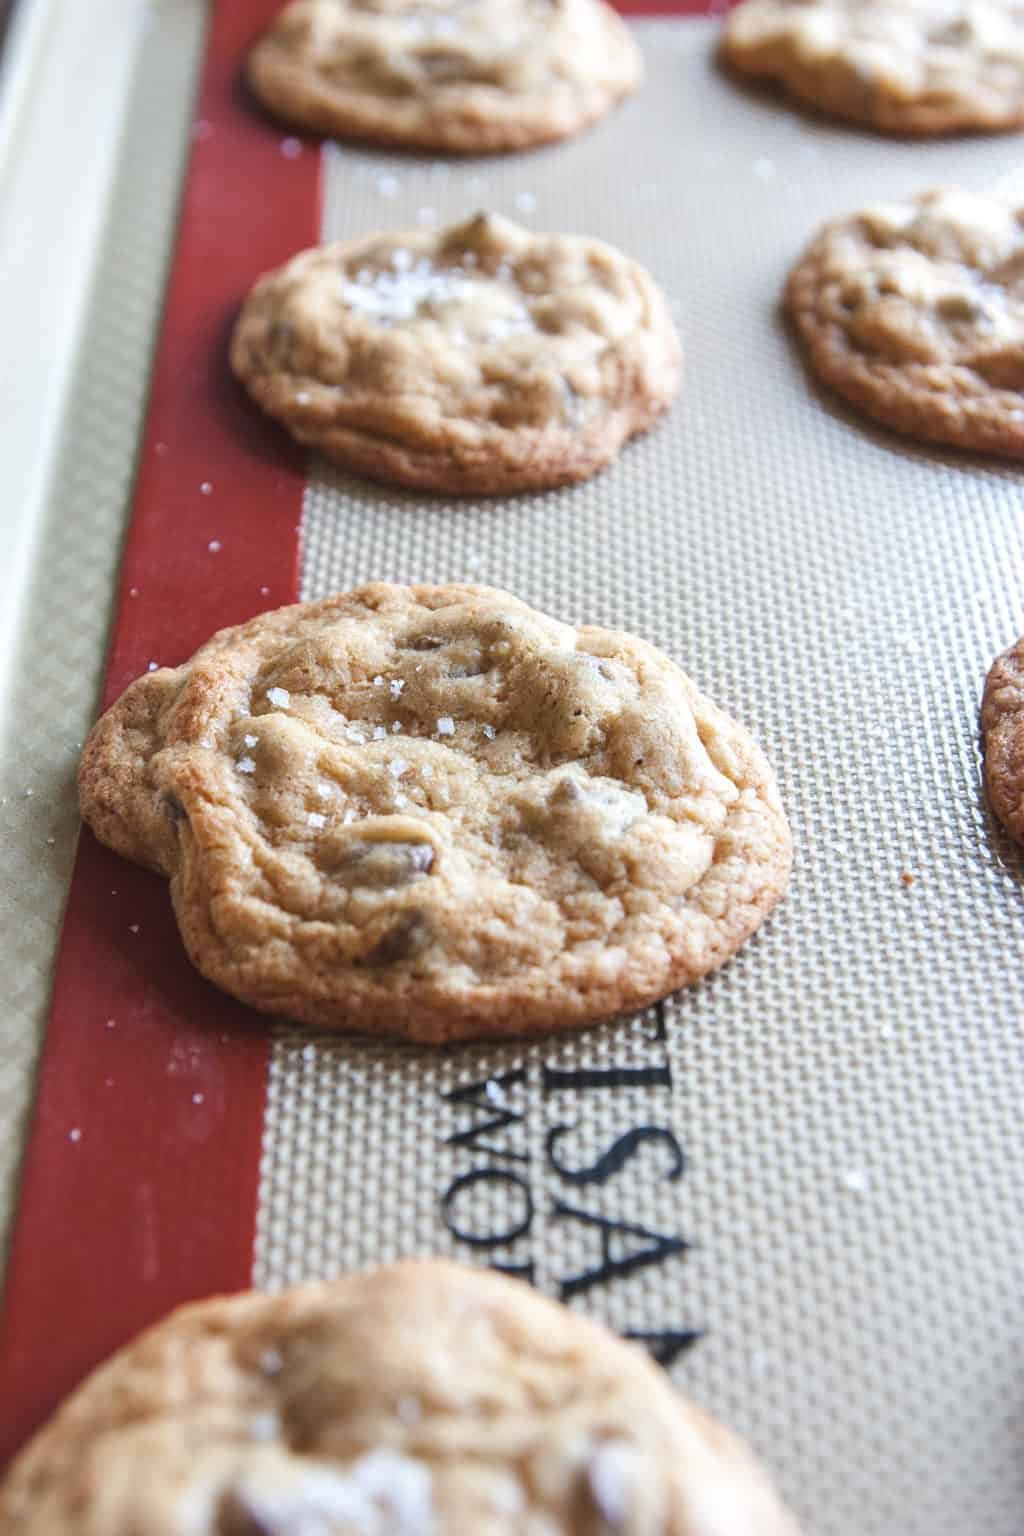 Salted caramel chocolate chip cookies recipe from @sweetphi